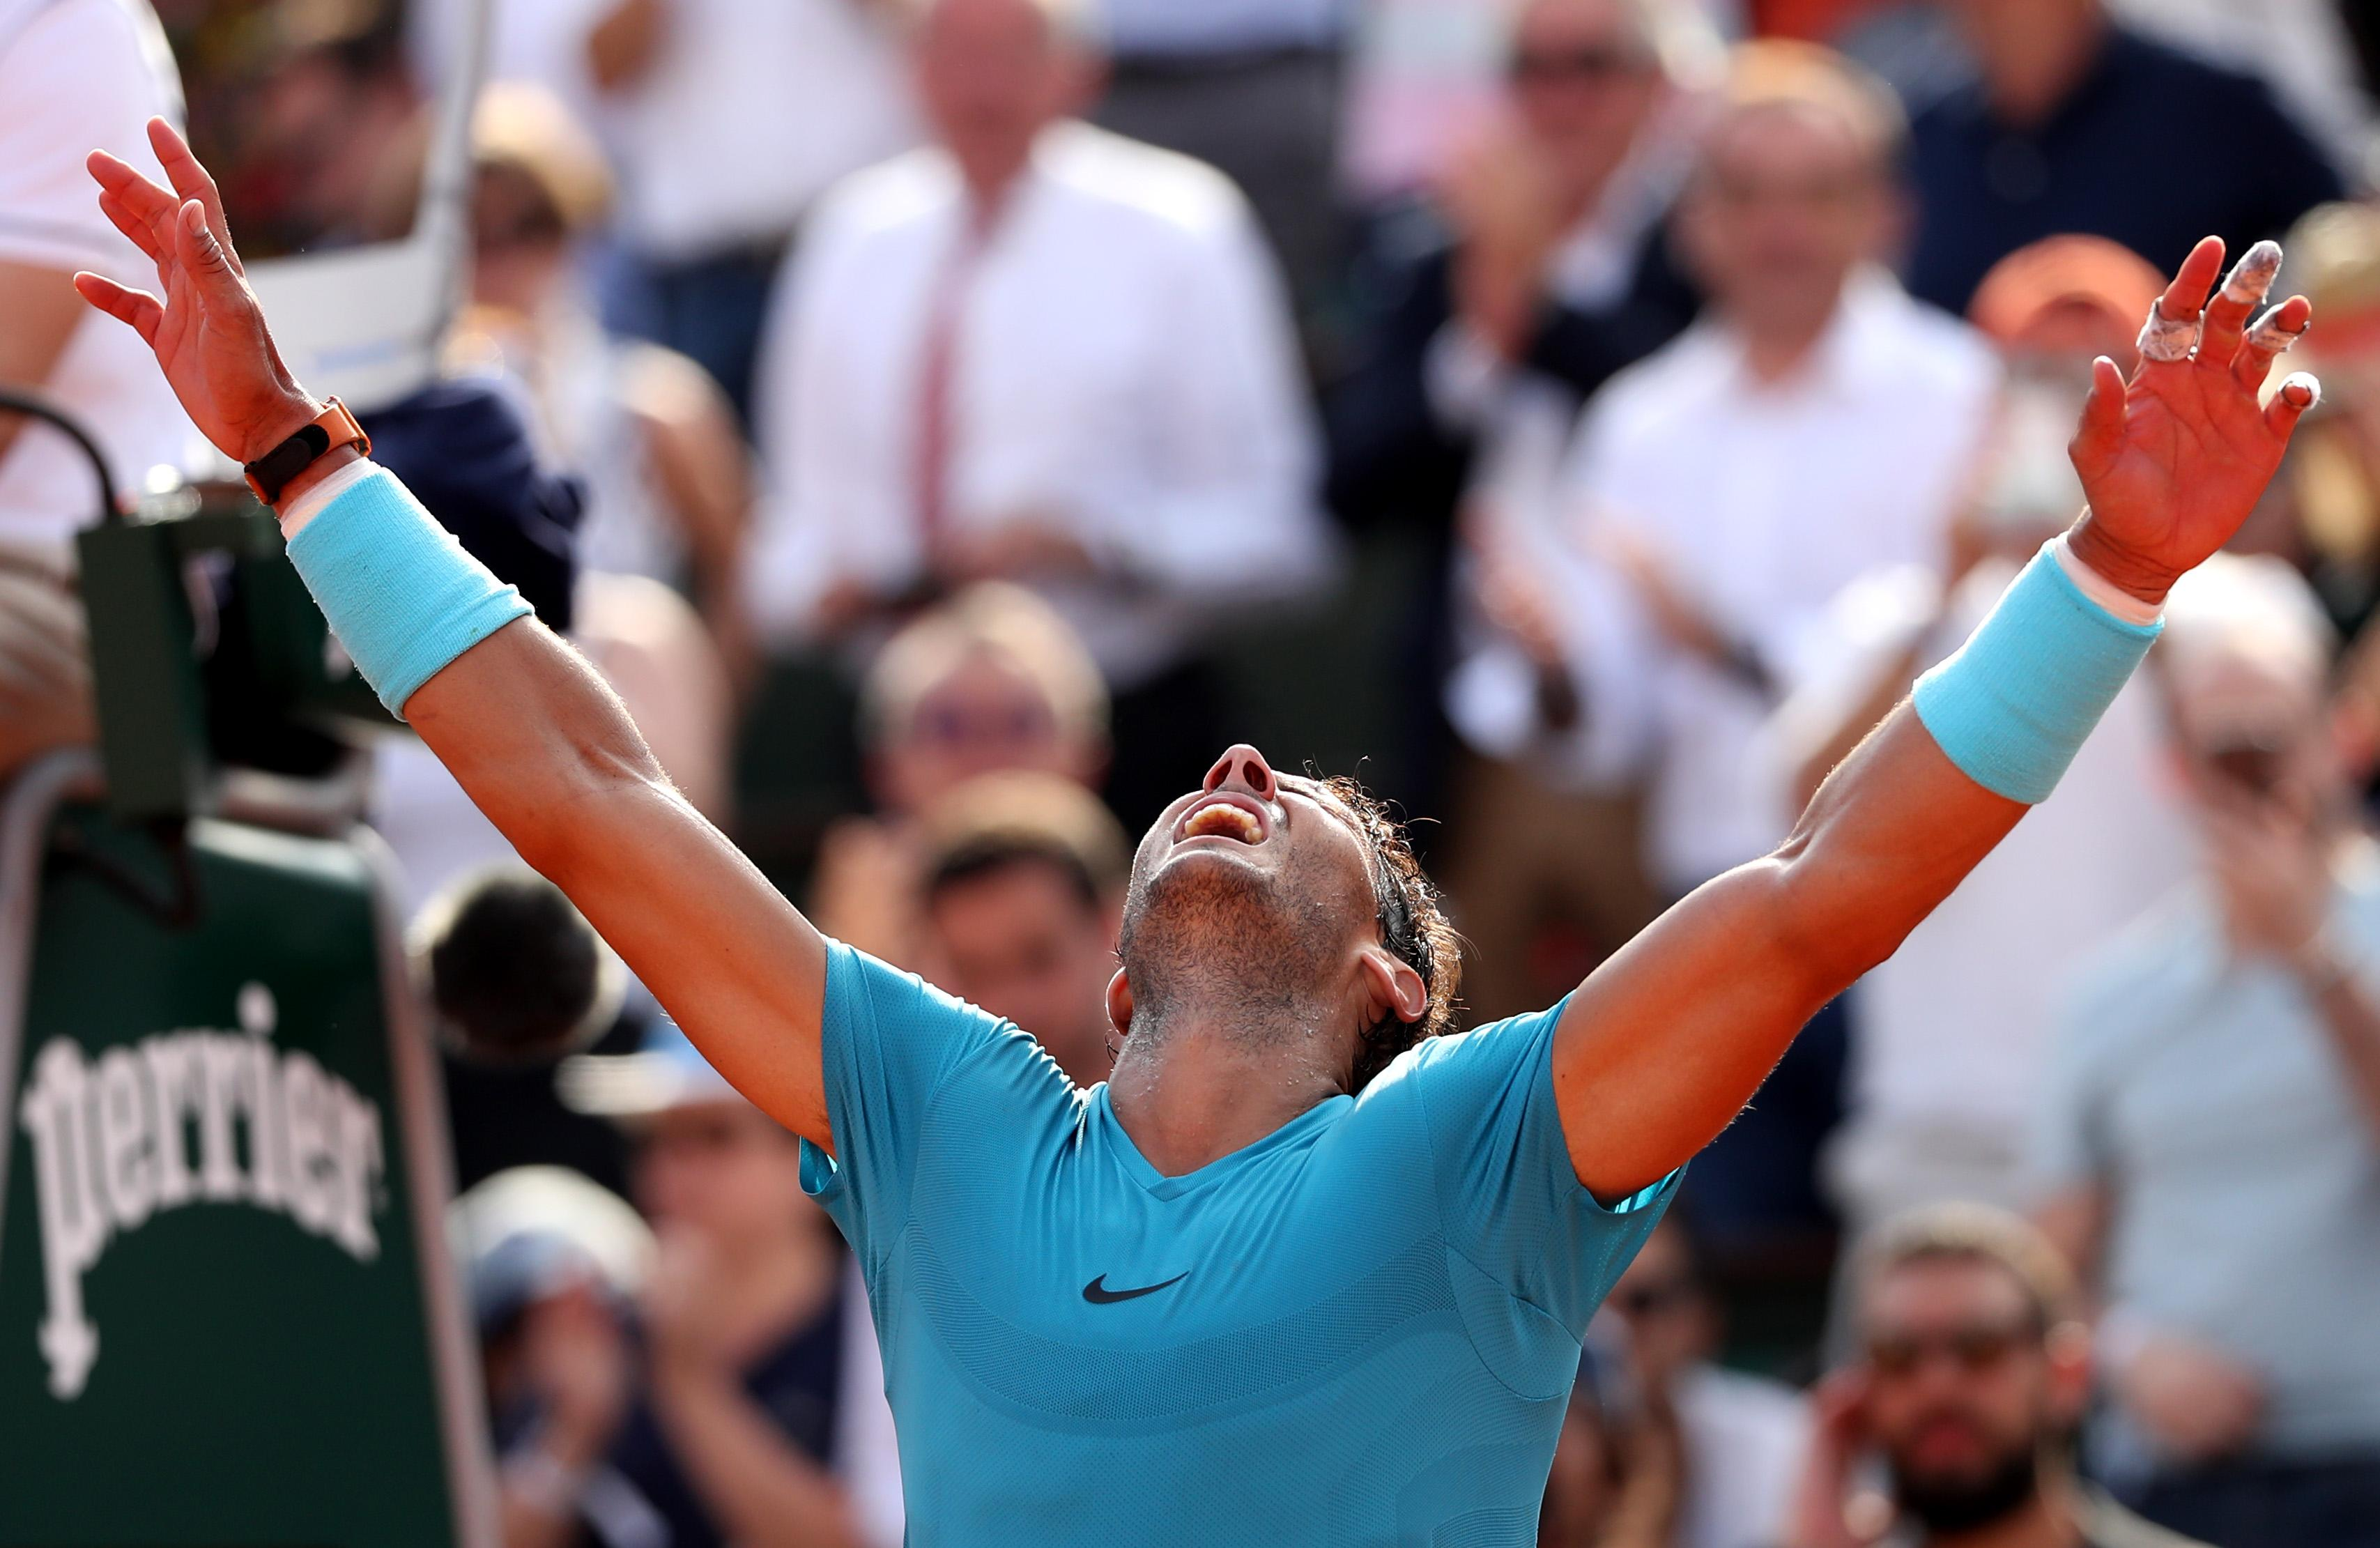 WRAPUP 1-Tennis-Highlights of French Open 15th day